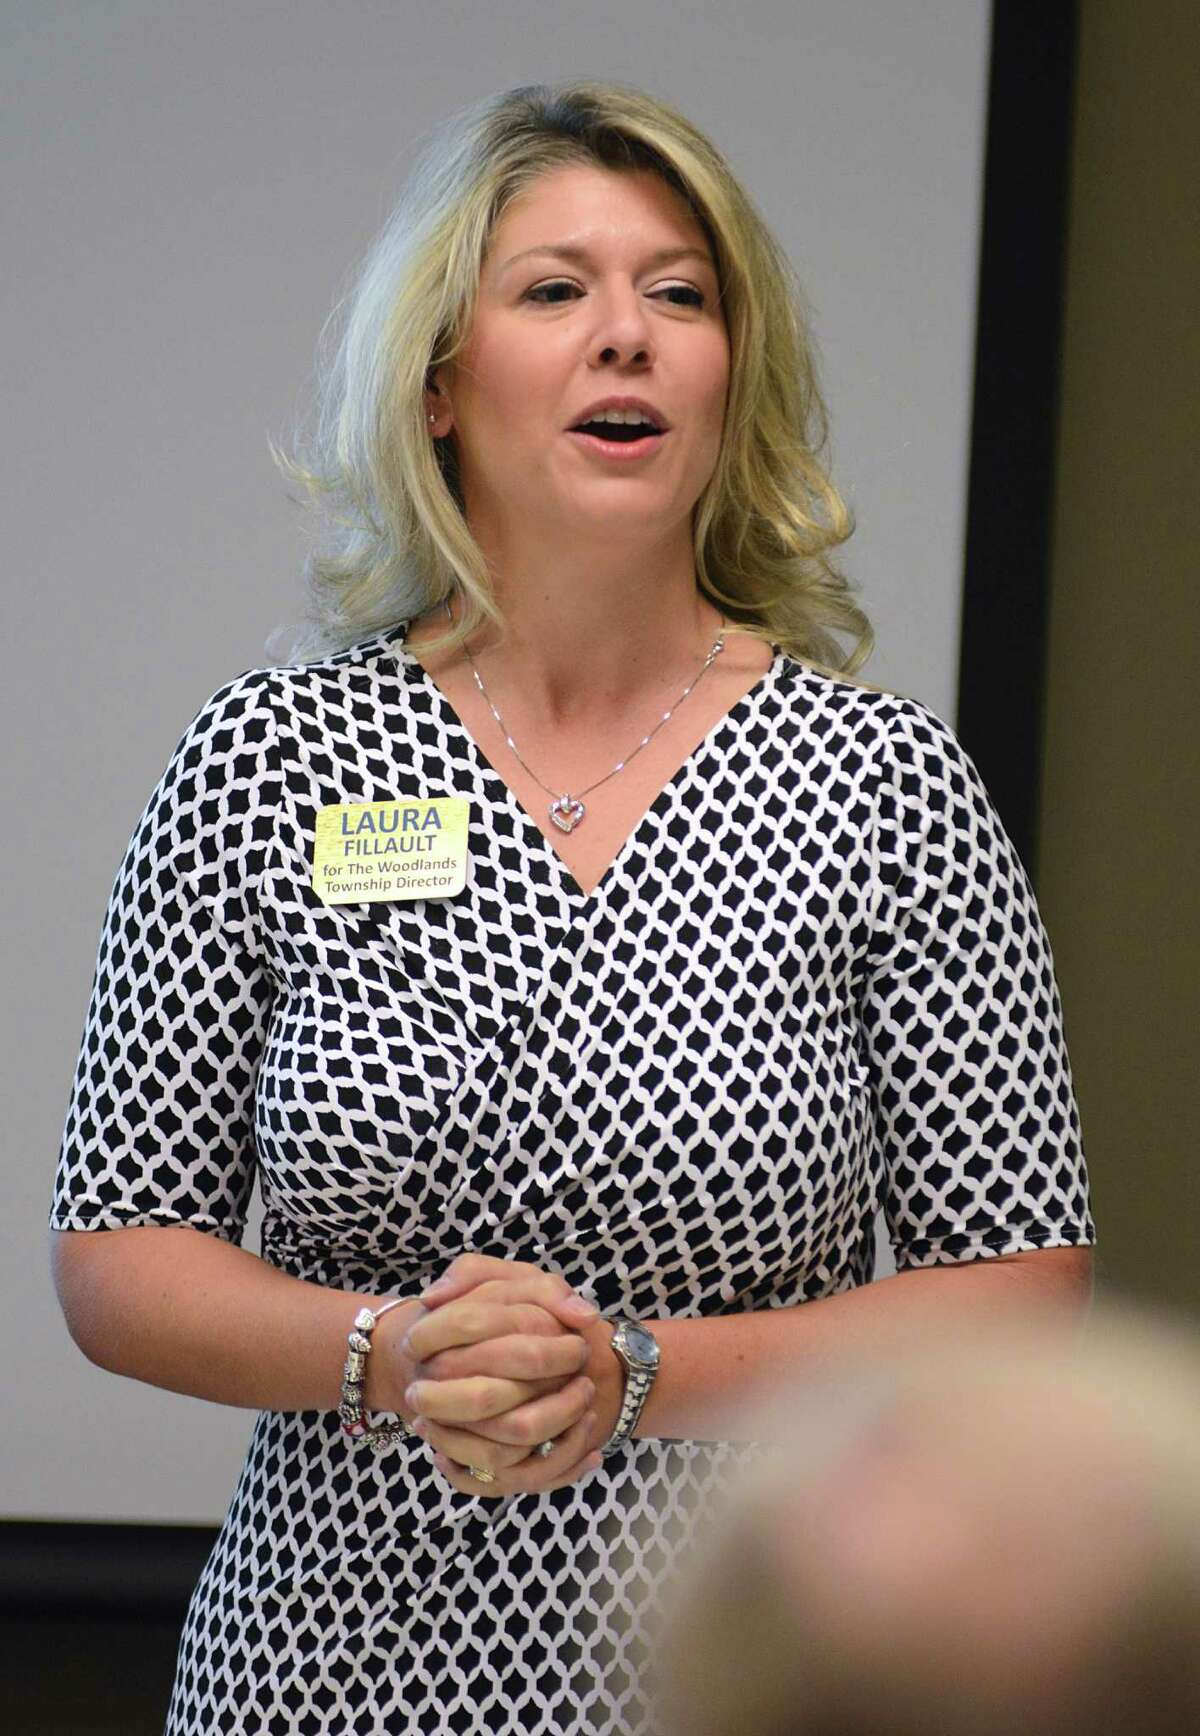 Candidate Laura Fillault speaks during the Bike The Woodlands Coalition's forum for candidates for The Woodlands Township Board of Directors. at the Huntsman Corporation meeting room. Photograph by David Hopper Str during the Stratford at Magnolia volleyball game. Photograph by David Hopper